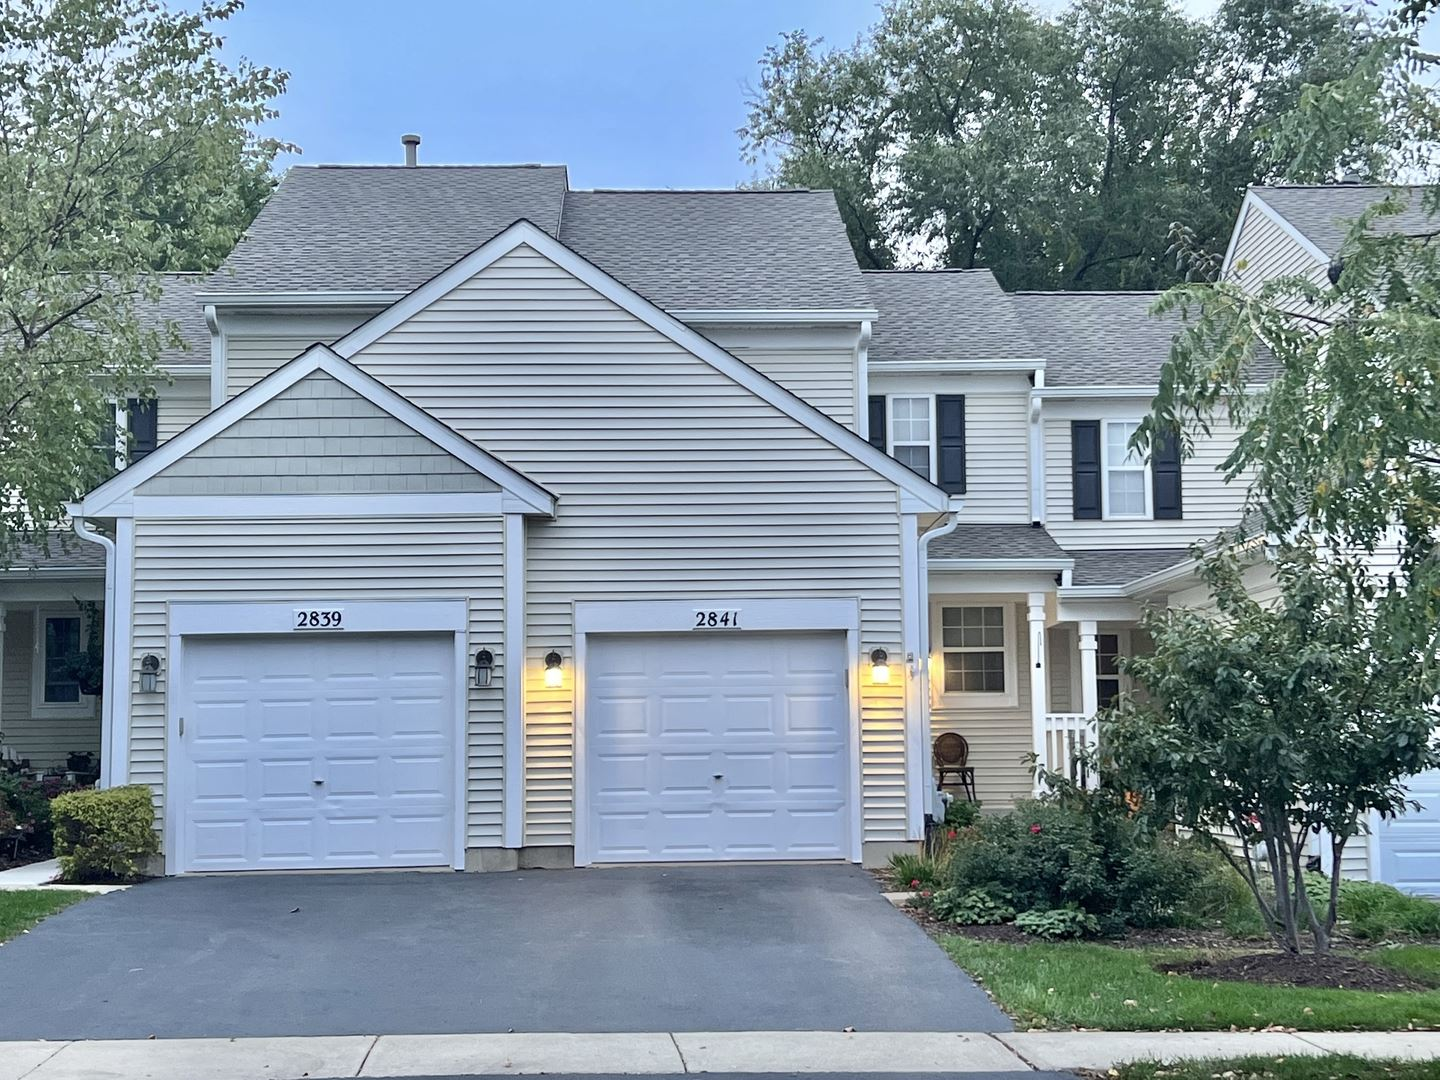 Photo of 2841 WHITE THORN Circle, Naperville, IL 60564 (MLS # 11243840)